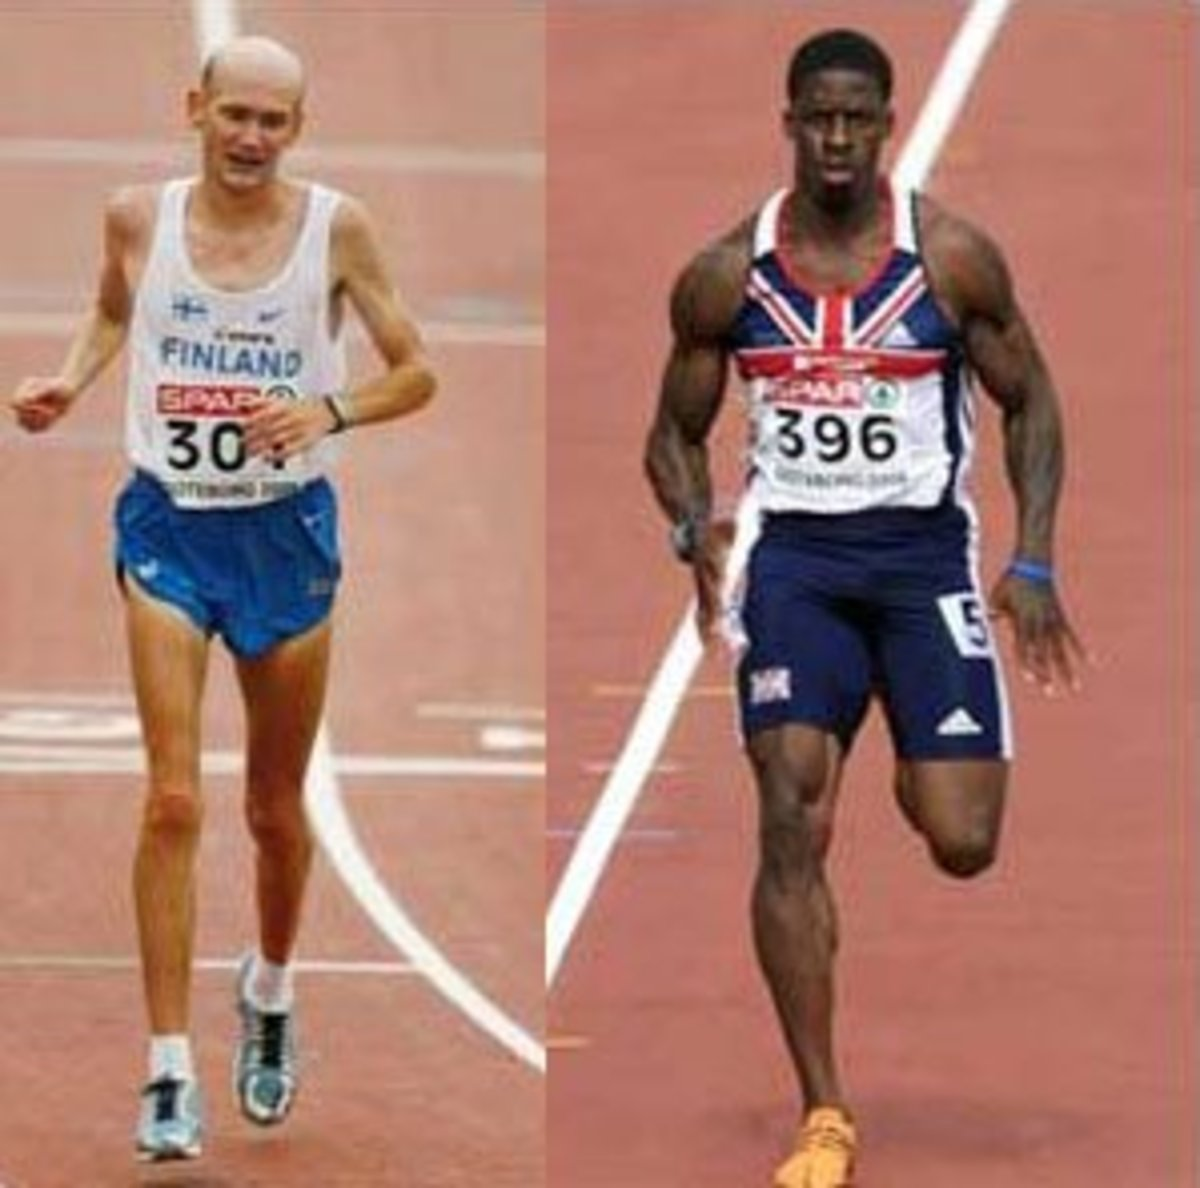 fast-twitch-vs-slow-twitch-muscle-fibres-endurance-or-strength